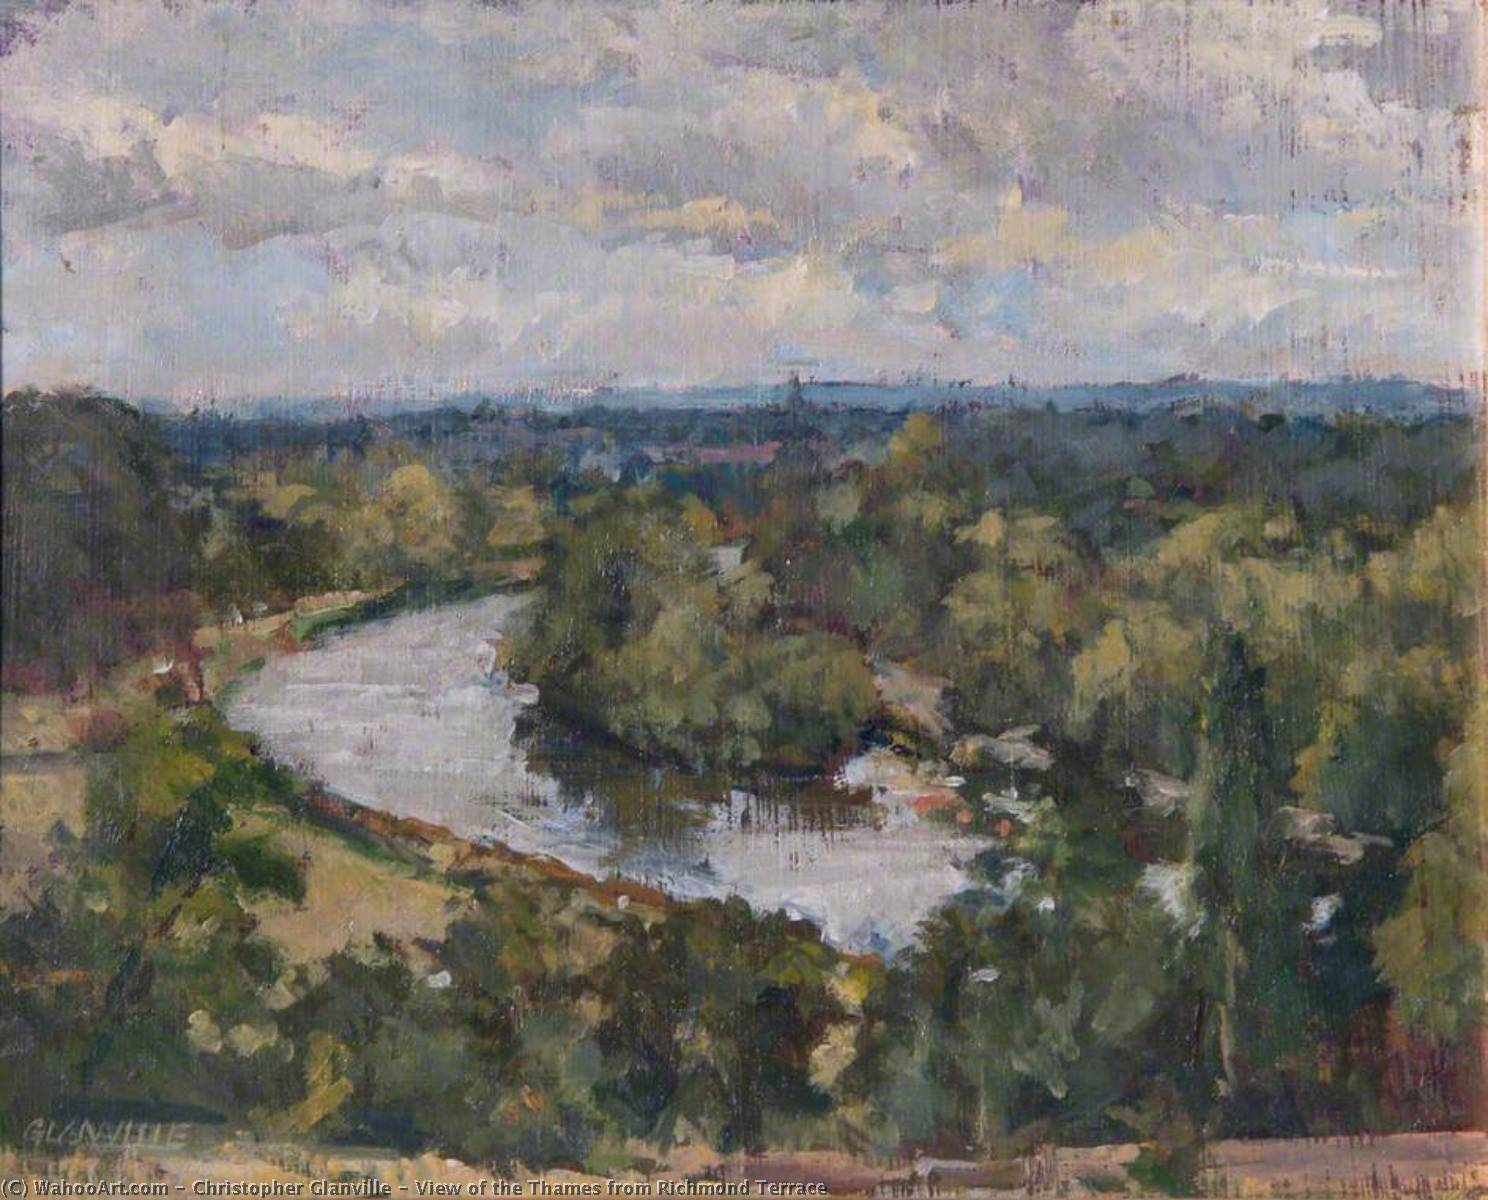 Wikioo.org - The Encyclopedia of Fine Arts - Painting, Artwork by Christopher Glanville - View of the Thames from Richmond Terrace